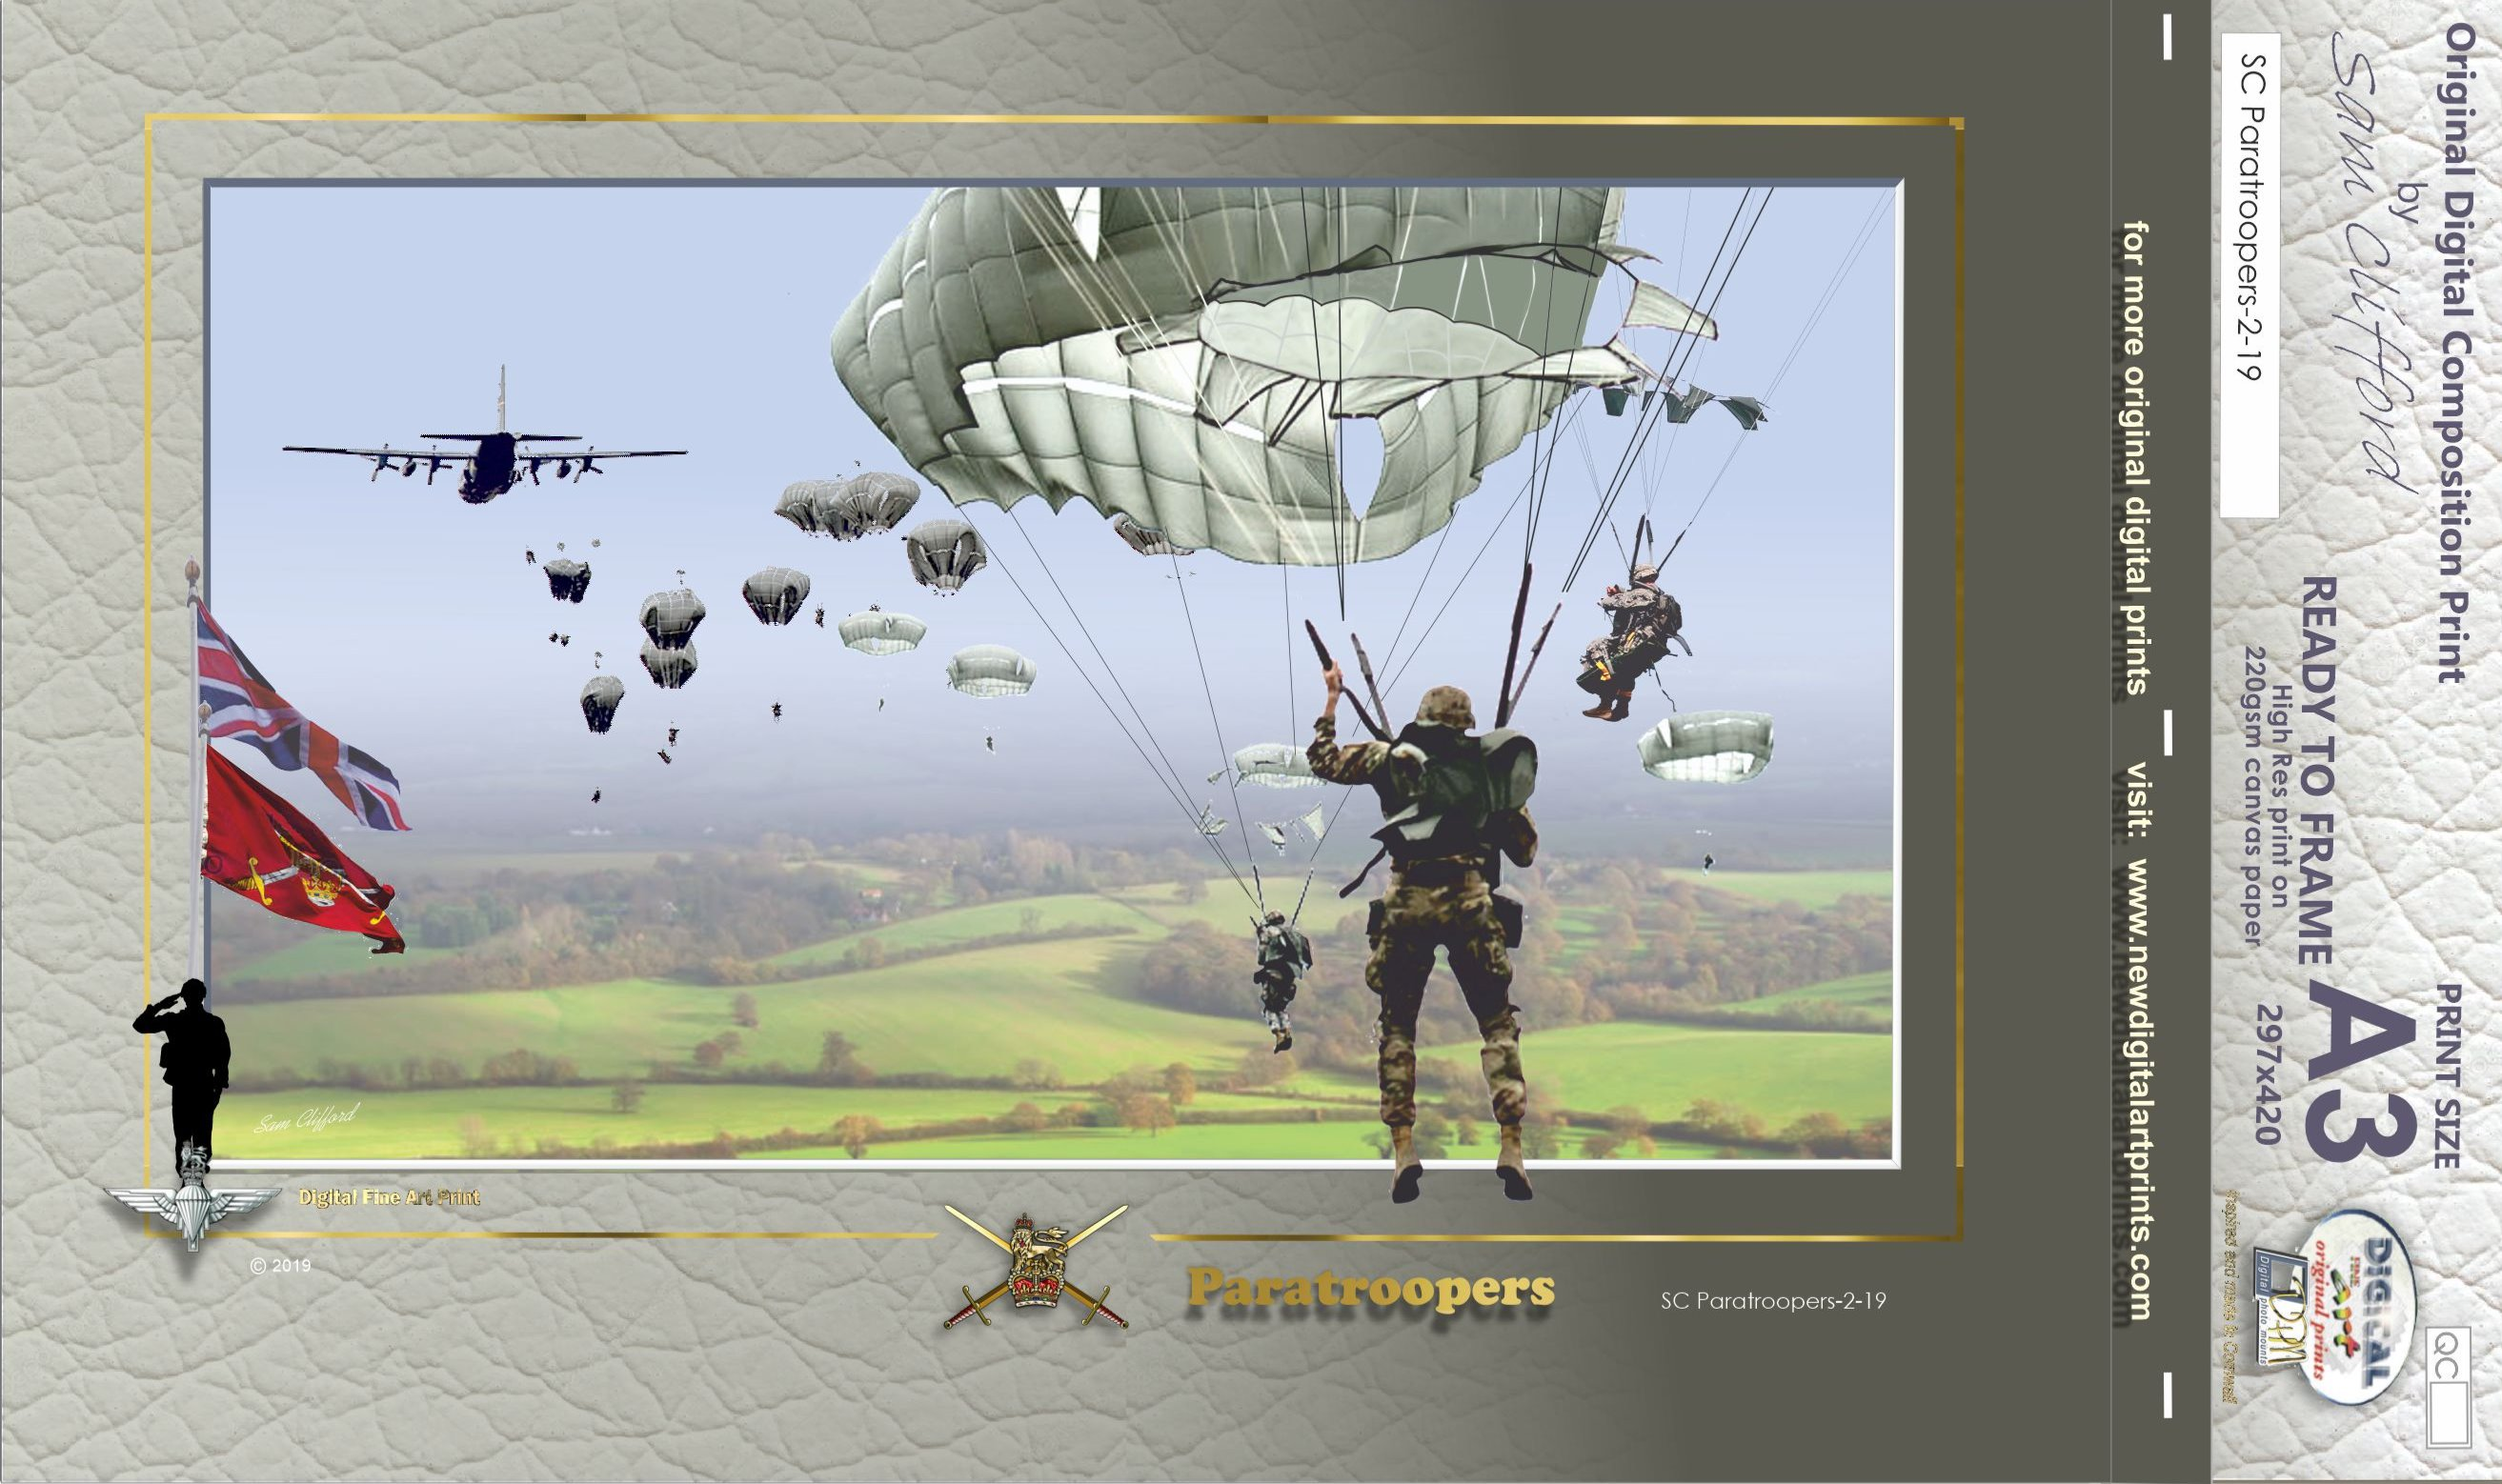 print code: SC Paratroopers-2-19